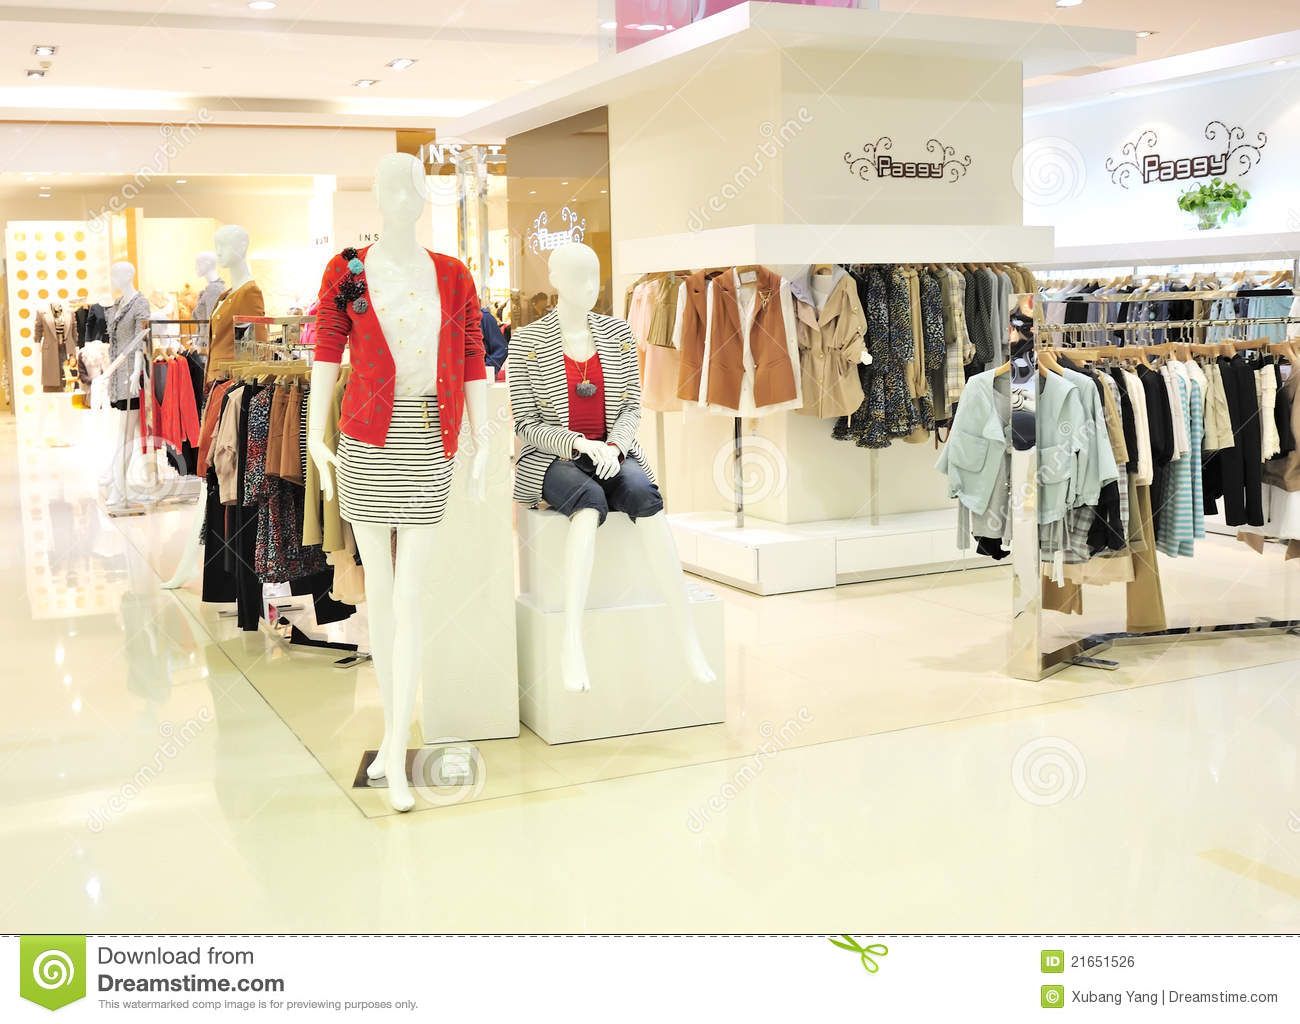 National women's clothing stores